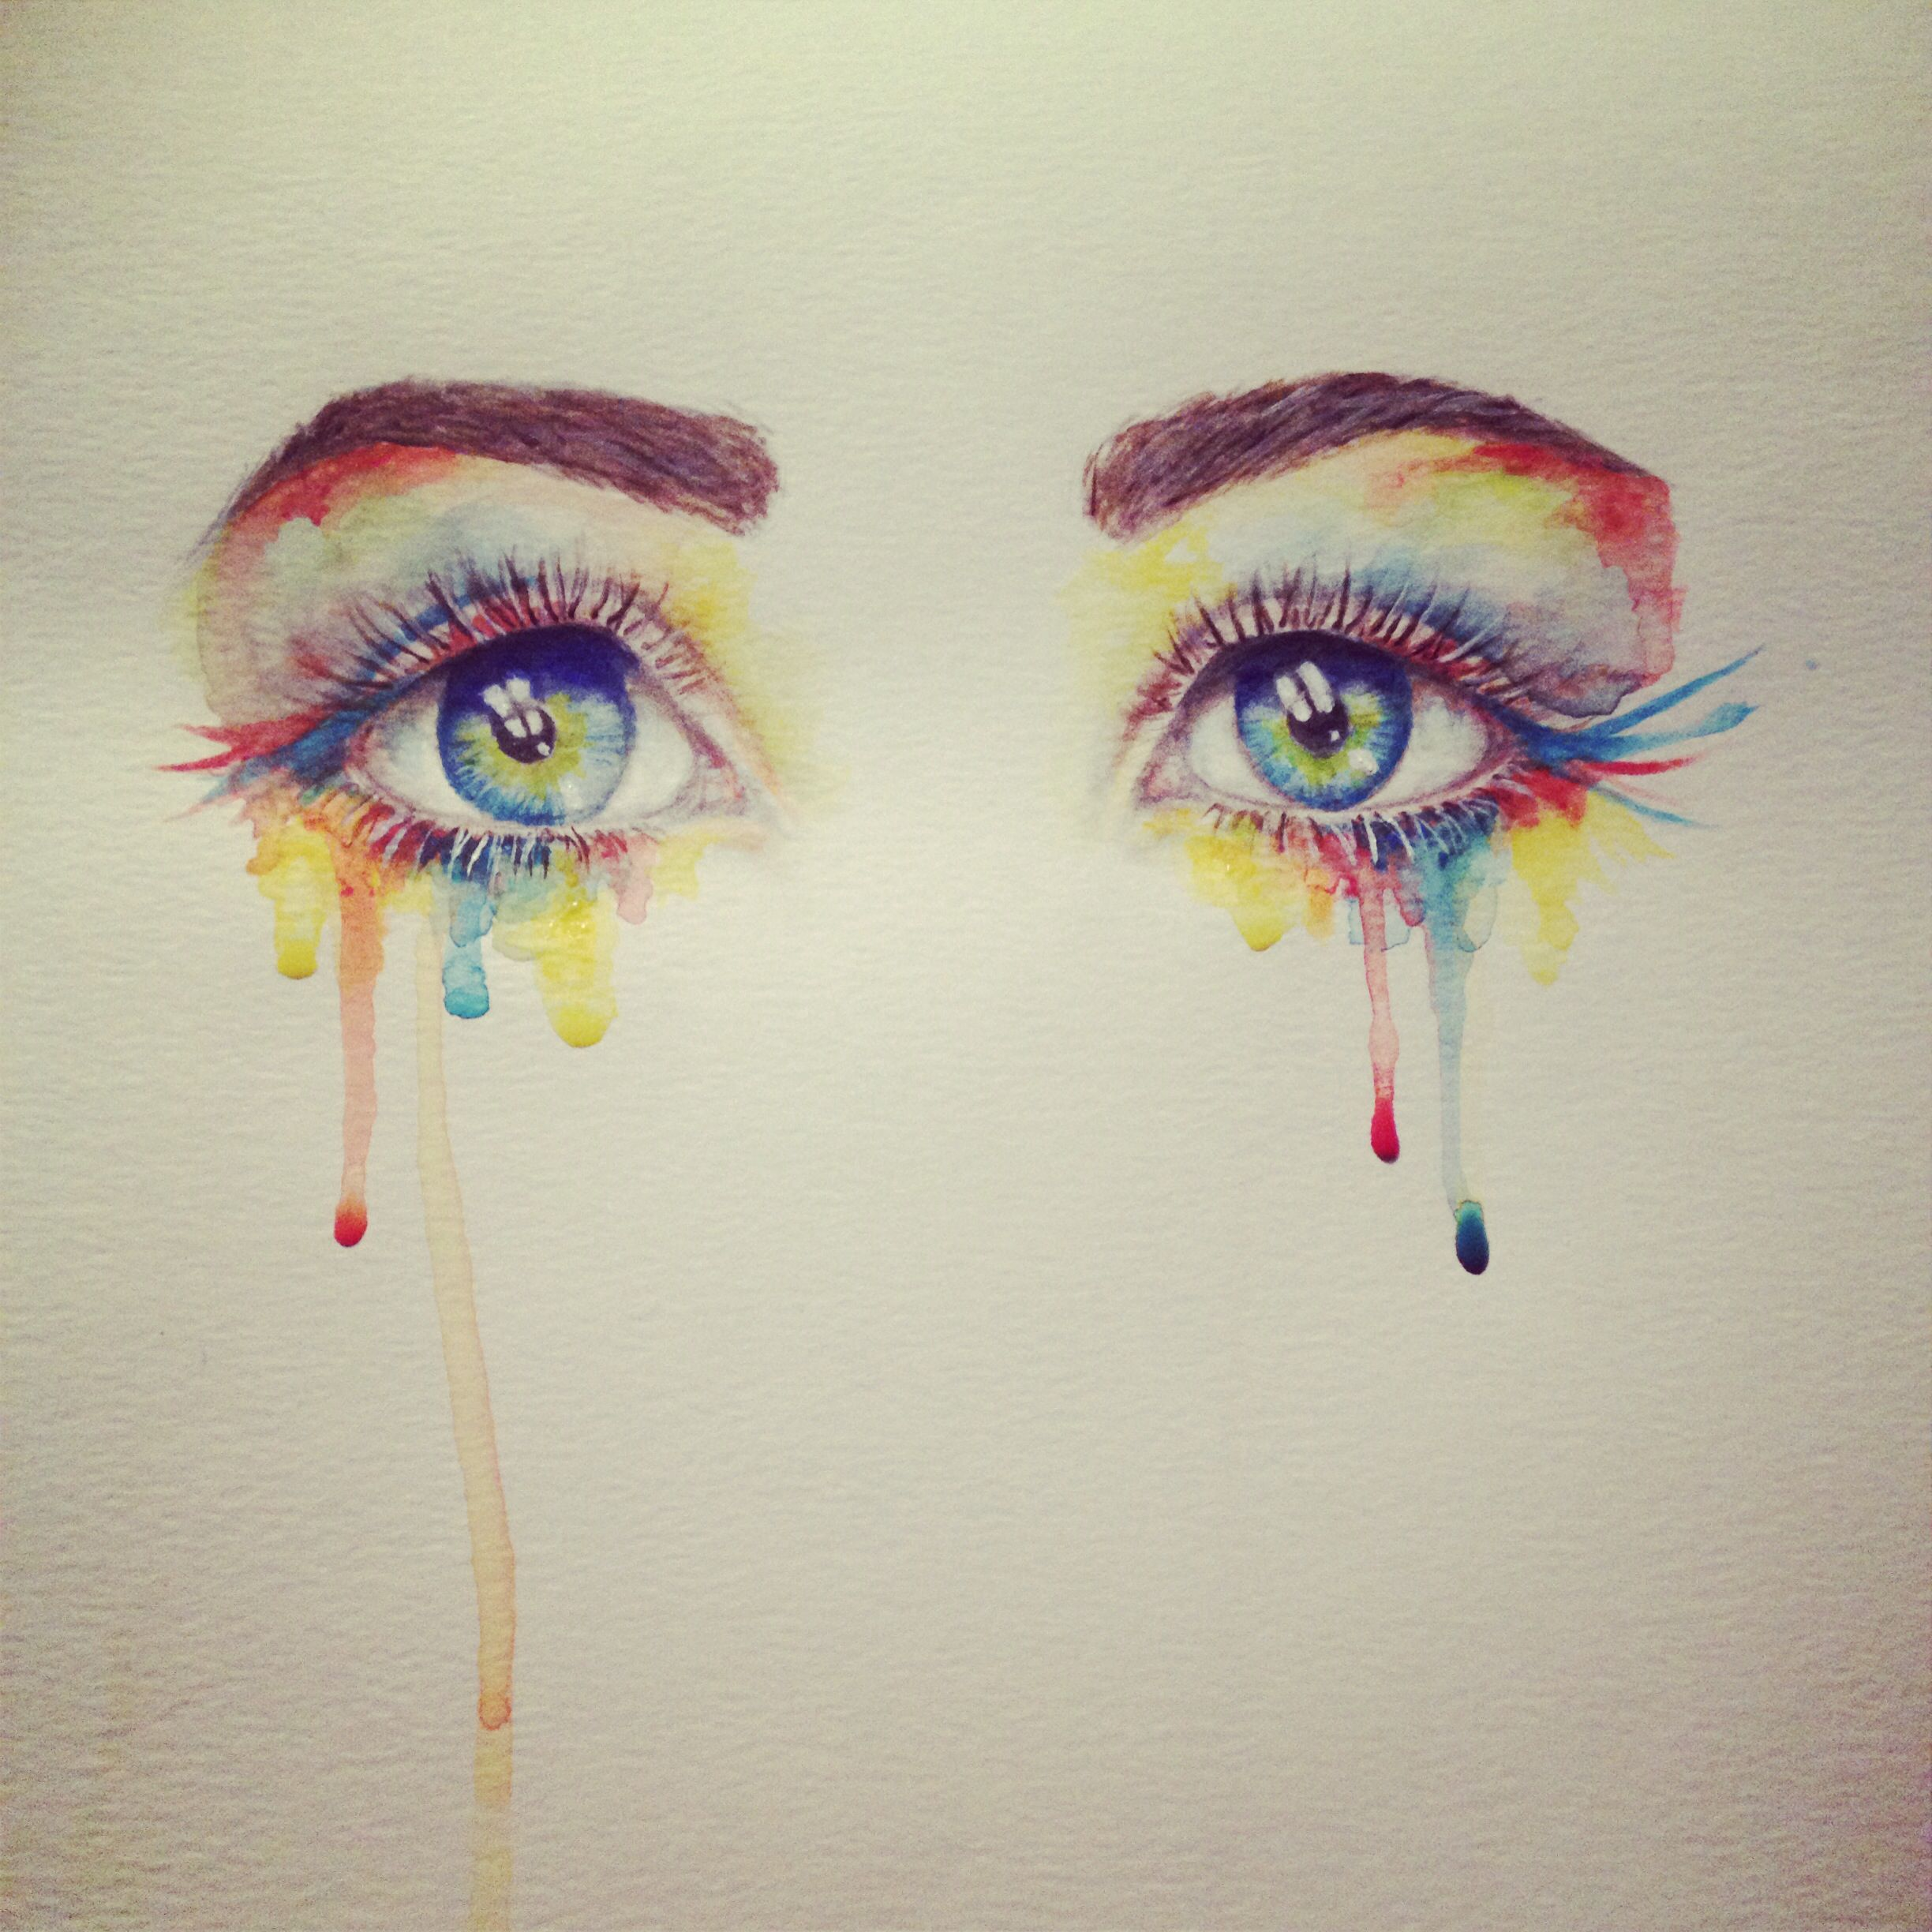 Watercolor Eyes Yeux Aquarelle Yeux Dessin Et Dessin Visage